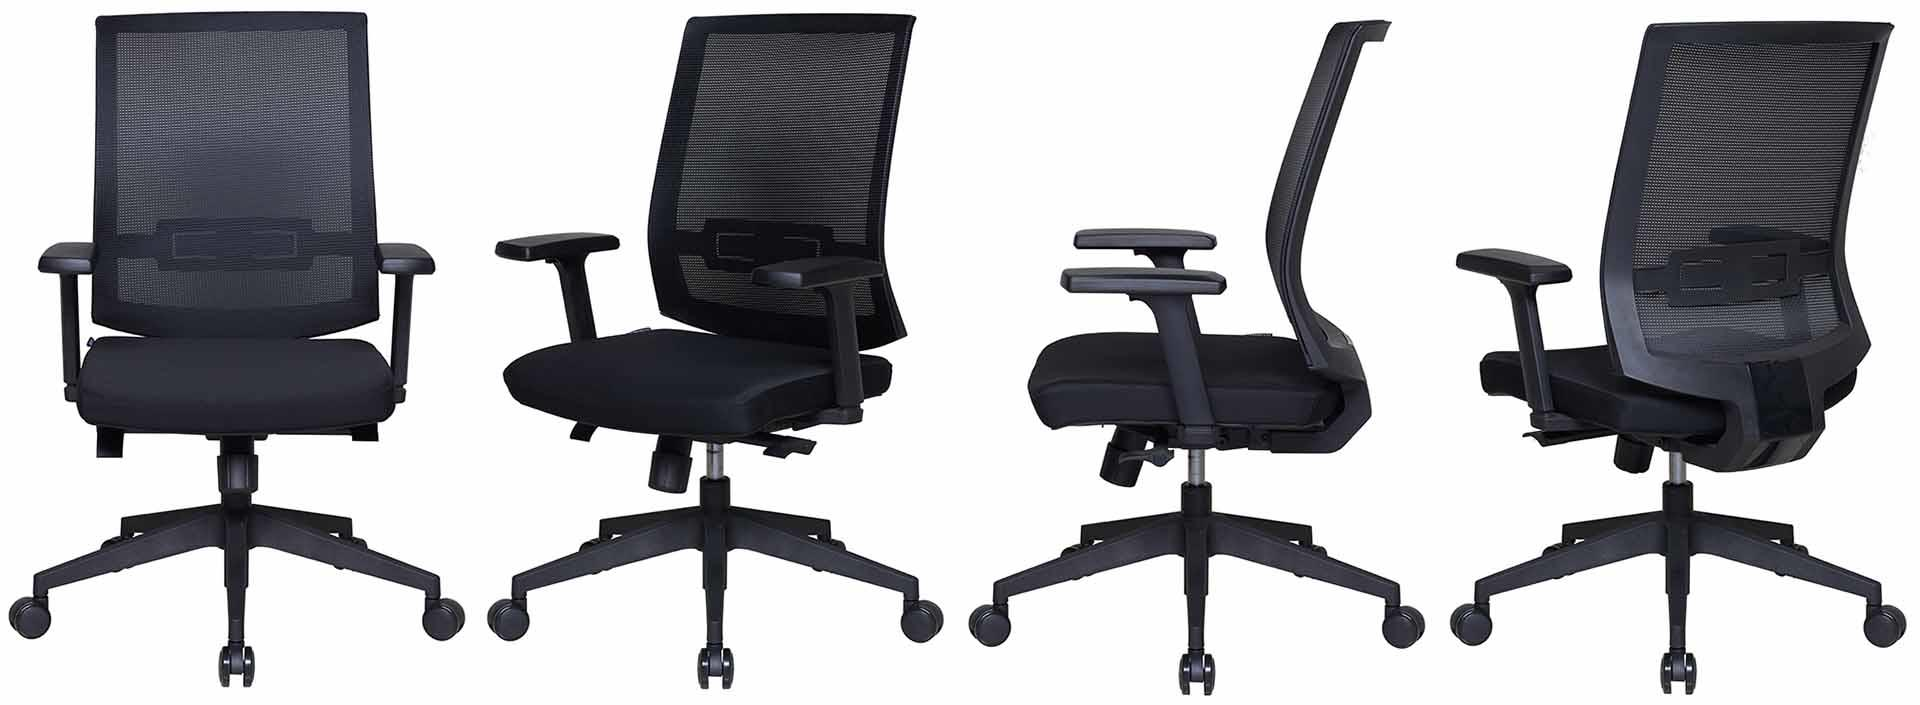 Tevson task low-back office chair in work room-1